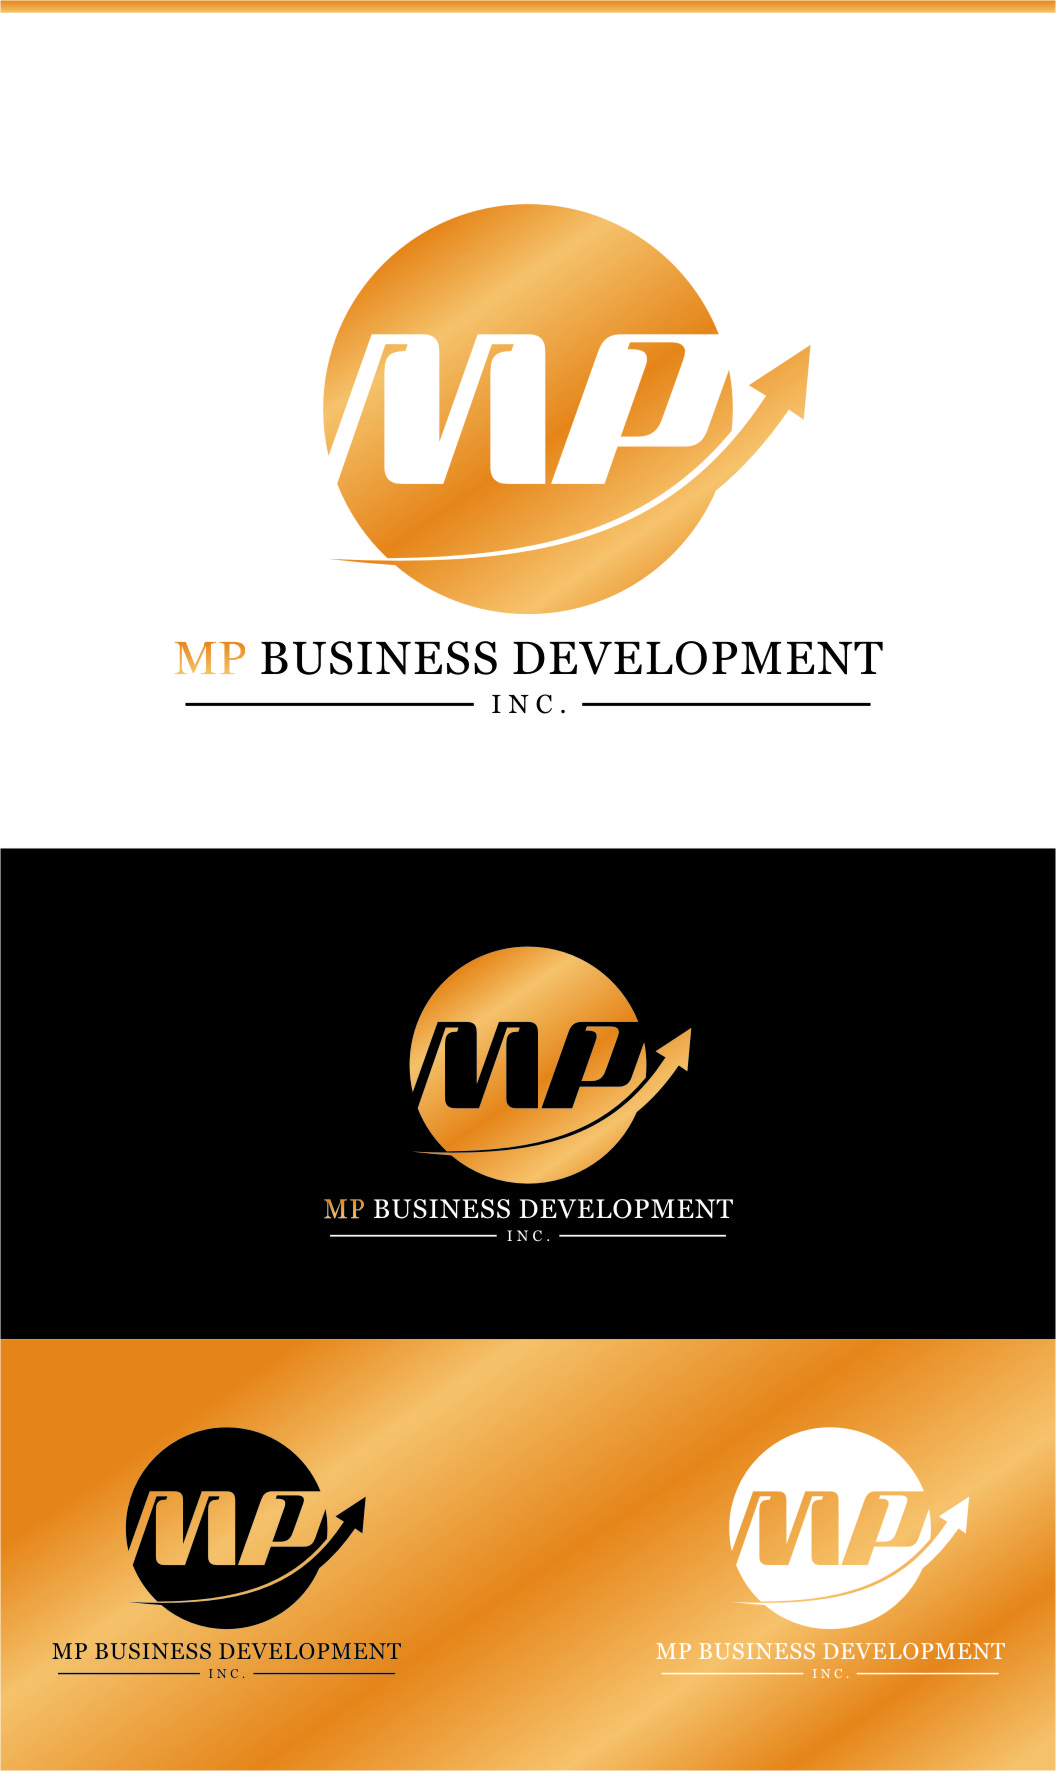 Logo Design by Ngepet_art - Entry No. 176 in the Logo Design Contest MP Business Development Inc. Logo Design.